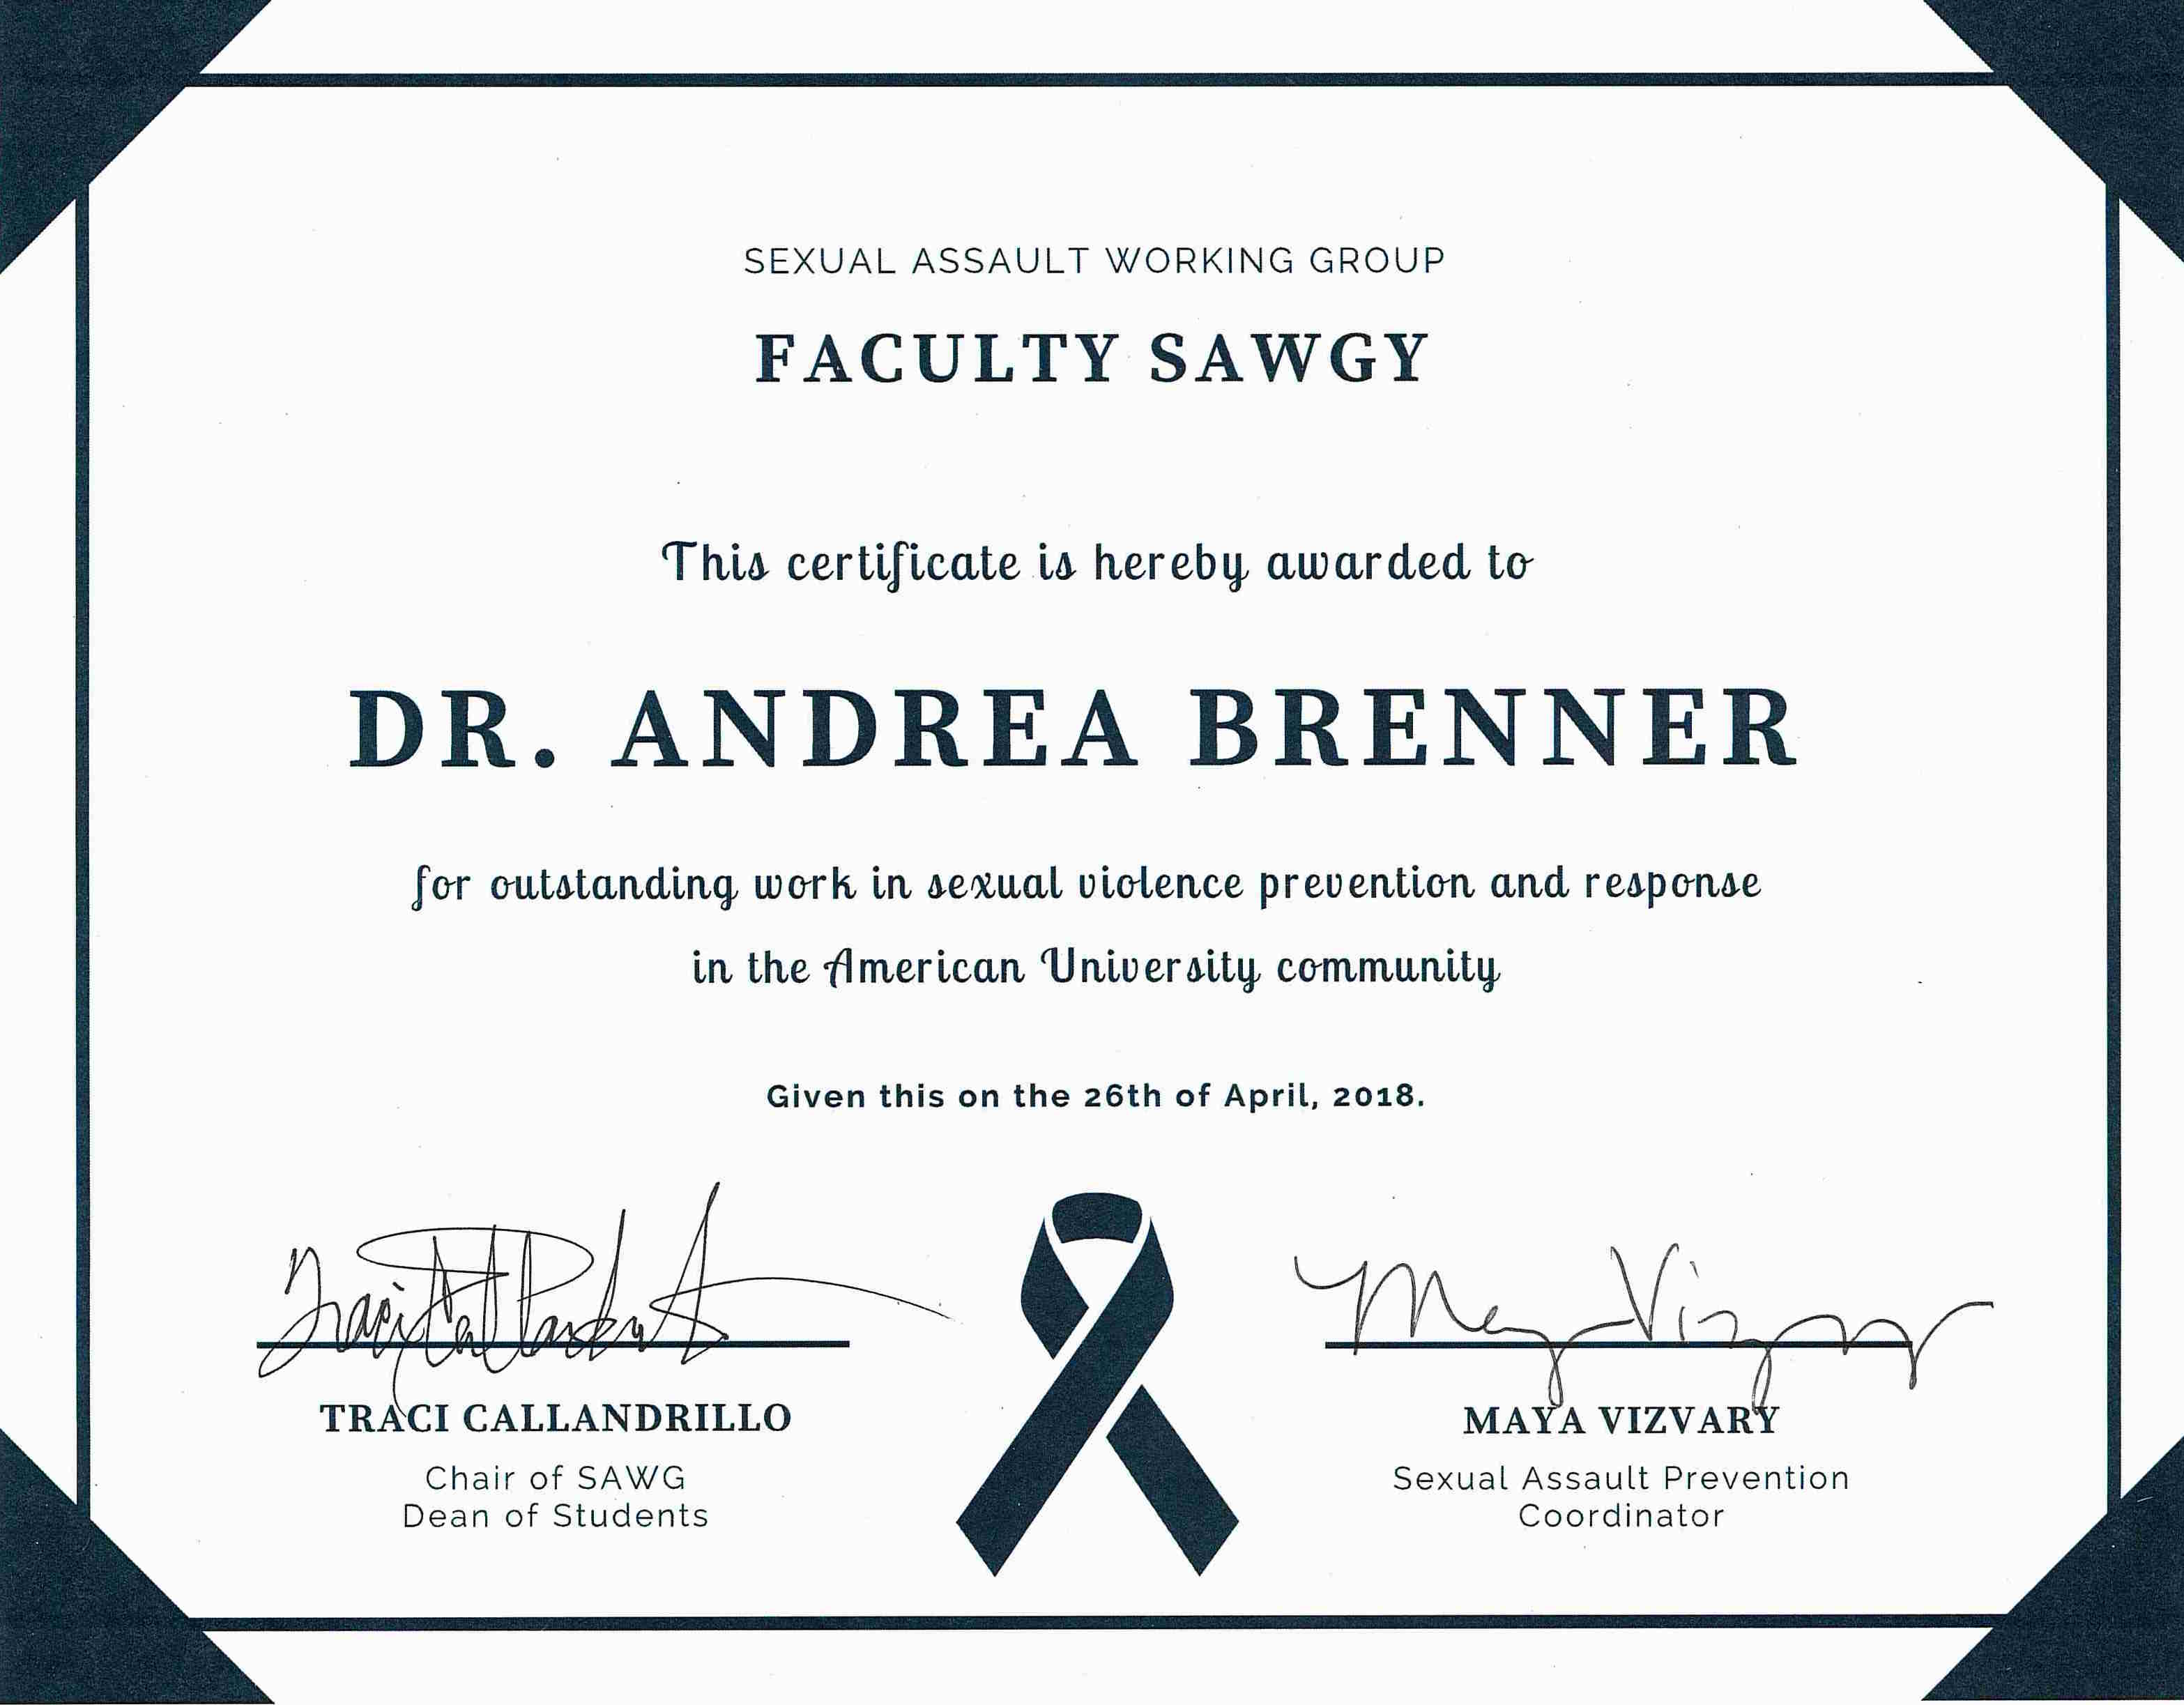 Dr. Andrea Brenner was awarded the Faculty SWAGy award